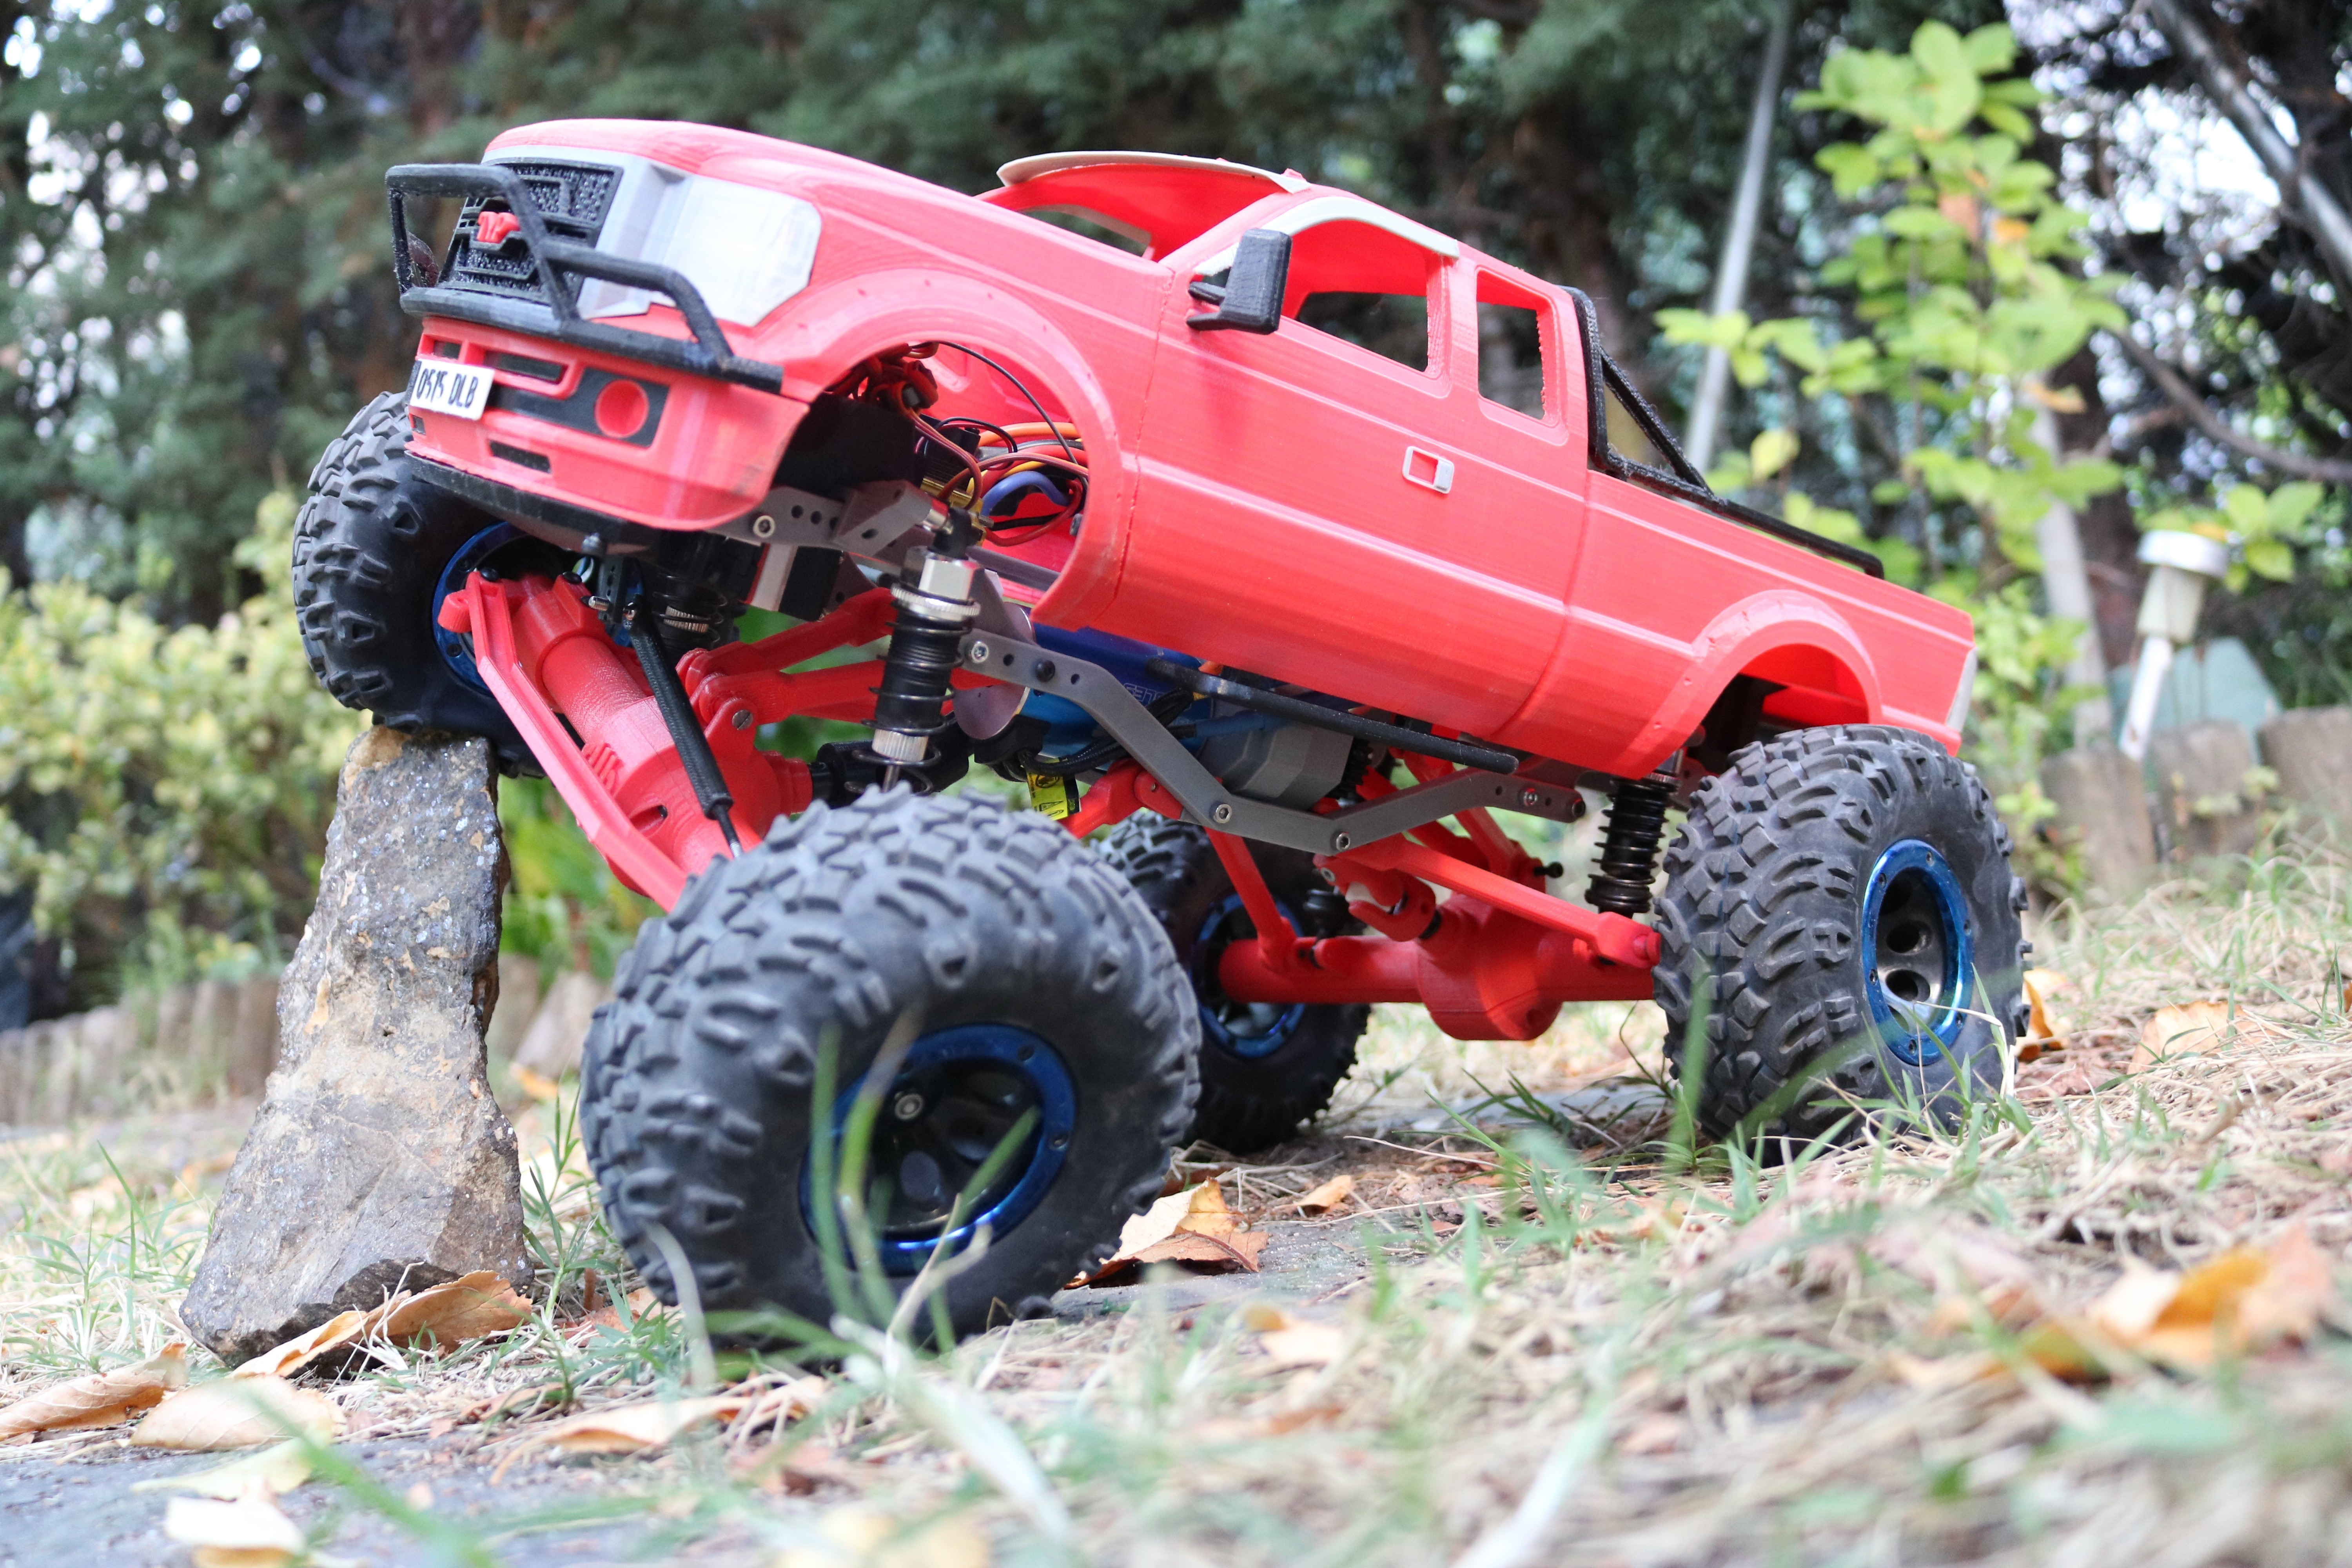 IMG_4964.JPG Download STL file MyRCCar 1/10 MTC Chassis Updated. Customizable chassis for Monster Truck, Crawler or Scale RC Car • 3D printer model, dlb5